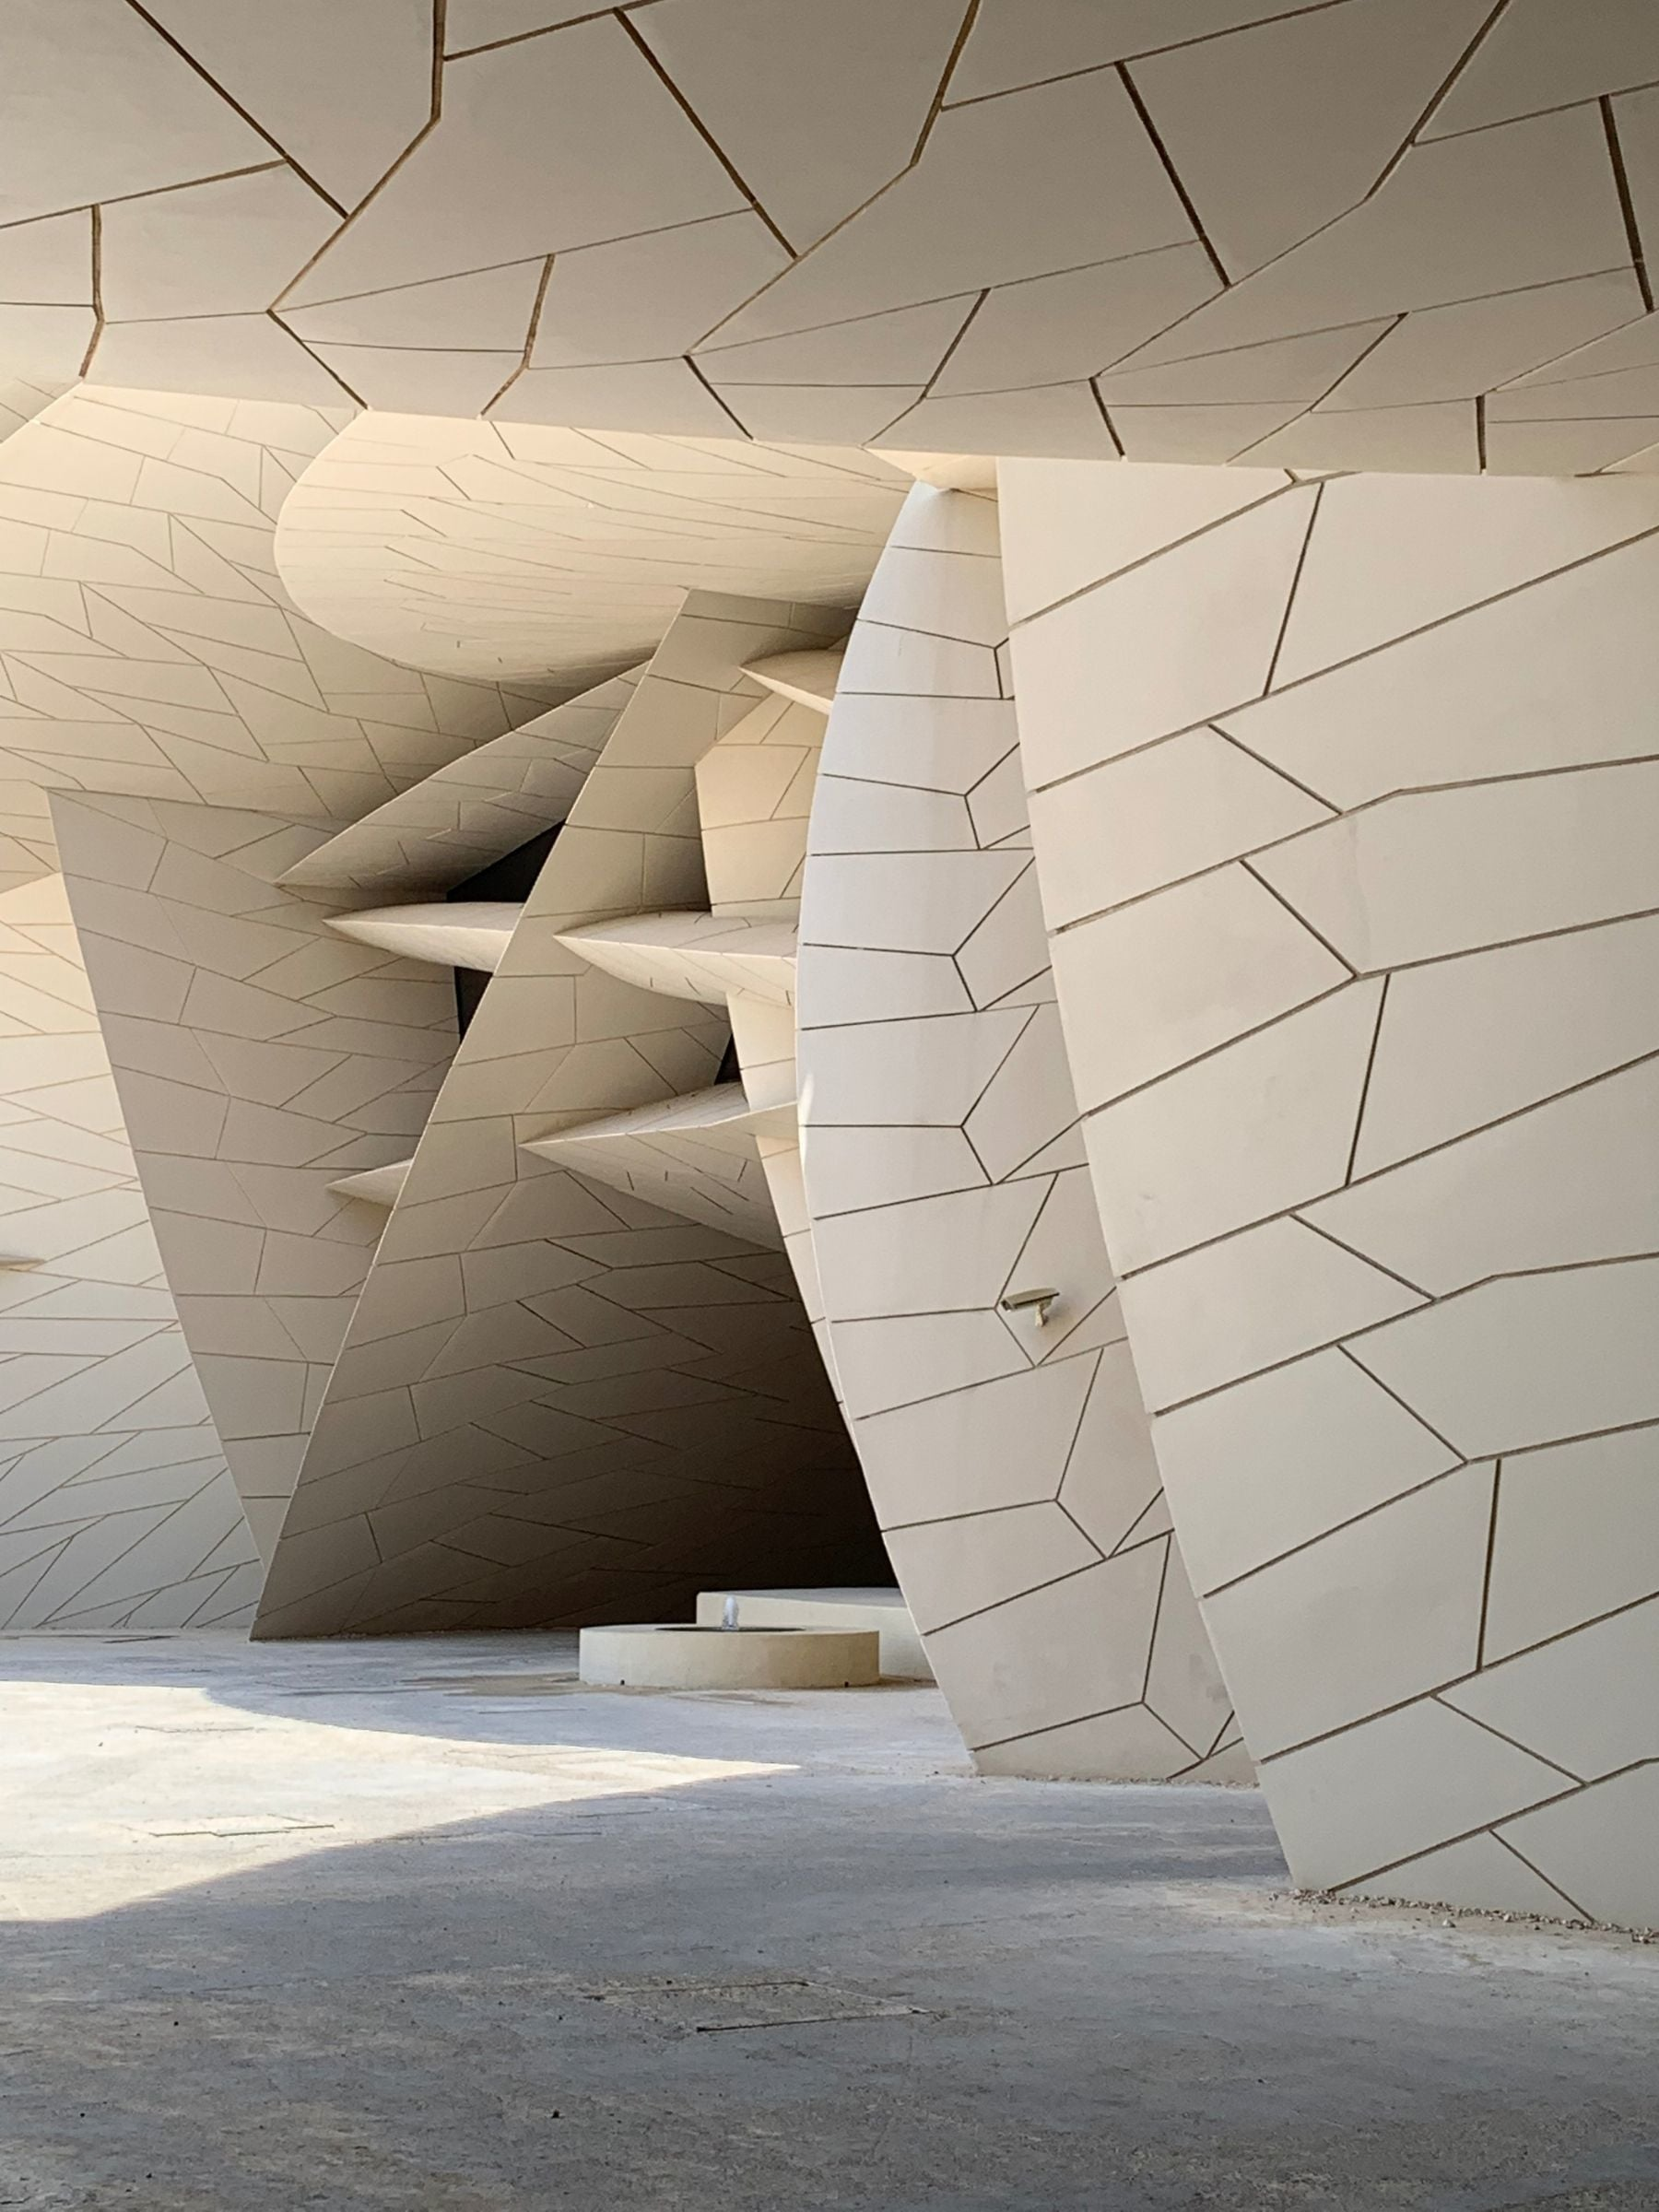 The sandy-beige coloured structure features a series of discs that appear to have crashed into each other.